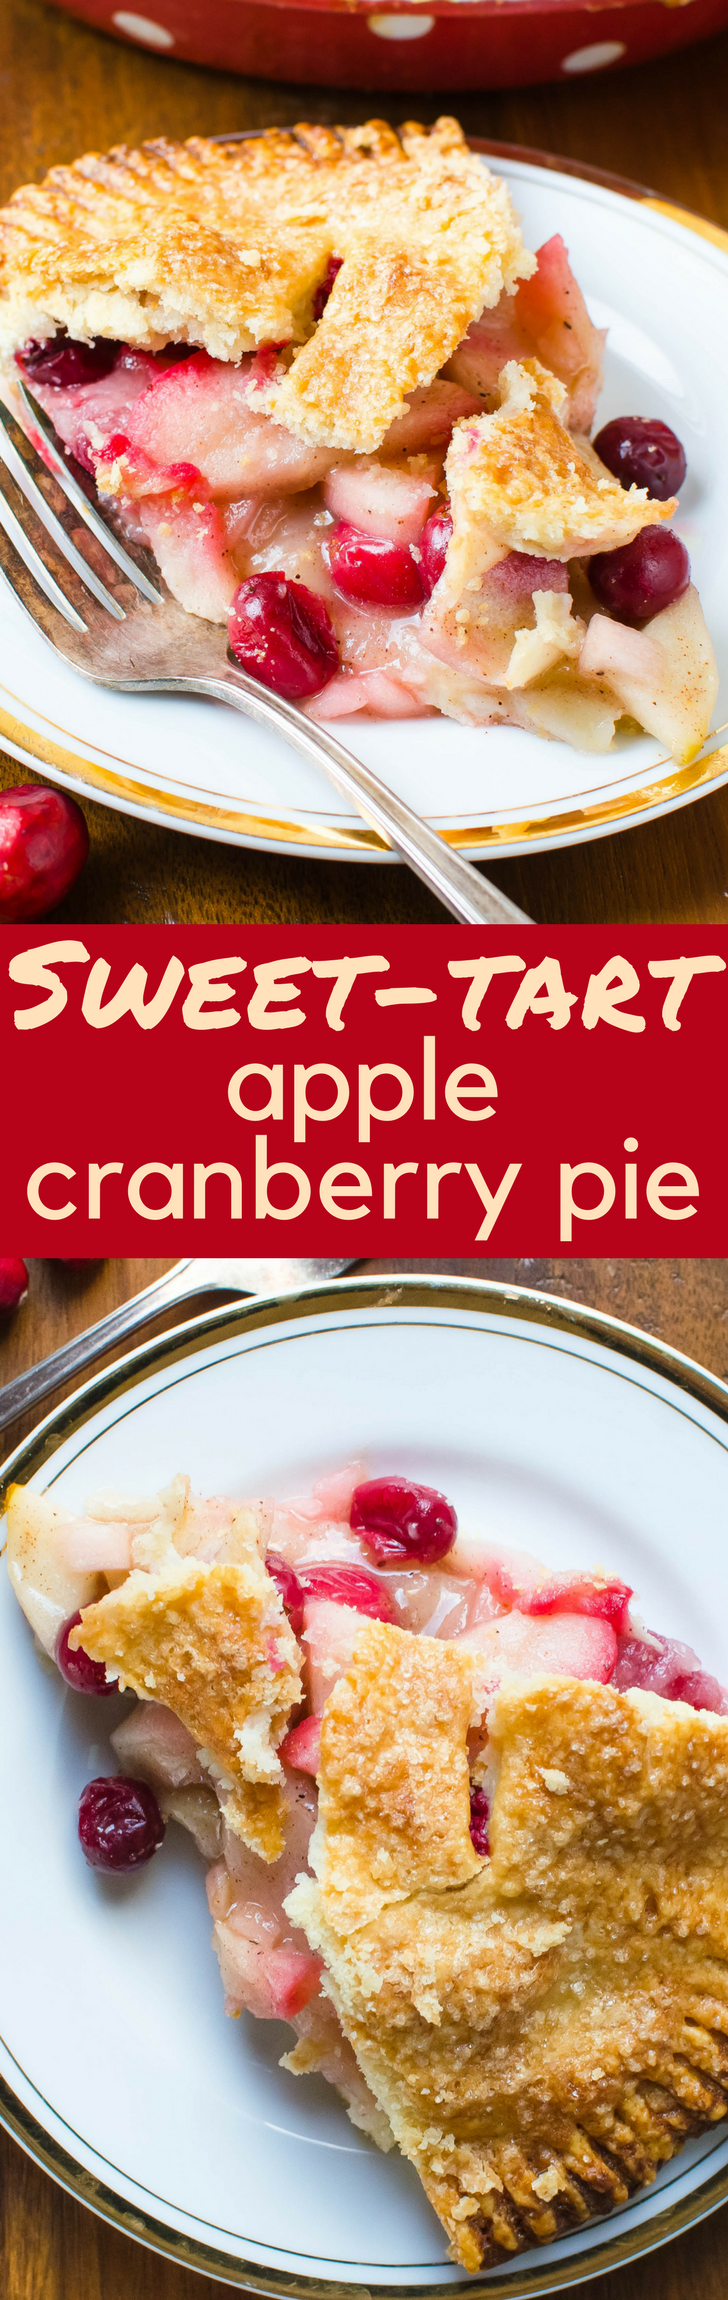 A simple apple pie recipe, this Sweet-Tart Apple Cranberry Pie is perfect for entertaining at the holidays.  Great for Thanksgiving or Christmas dessert! #applepie #apples #falldessert, #thanksgivingdessert, #christmasdessert, #pie, #homemadepie, #cranberries, #falldessert